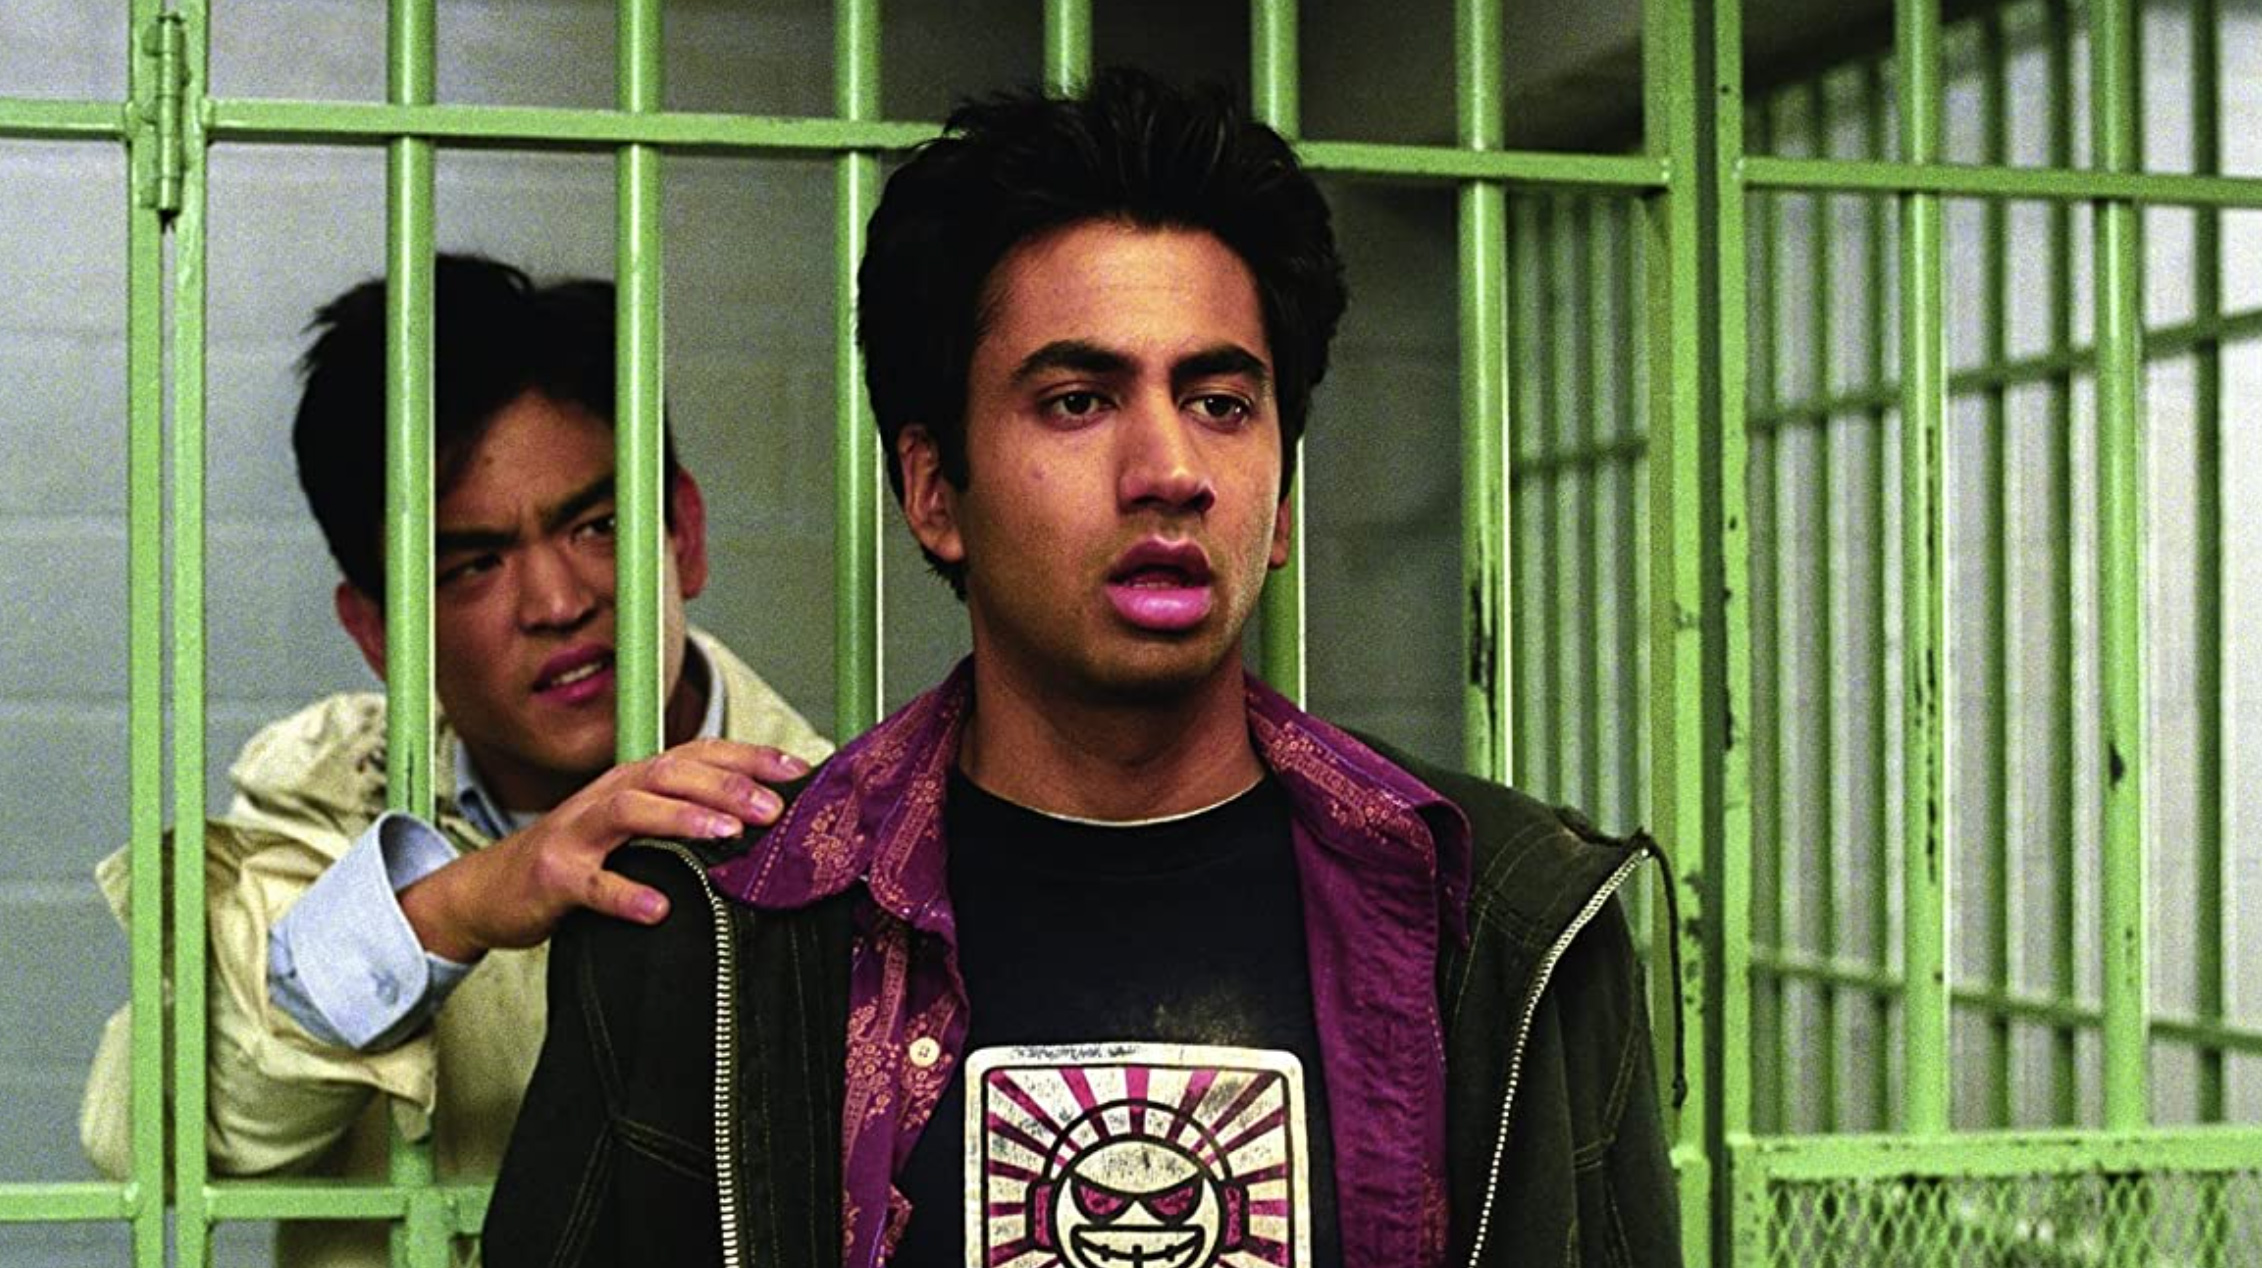 kumar in front of a jail cell and harold is in the cell